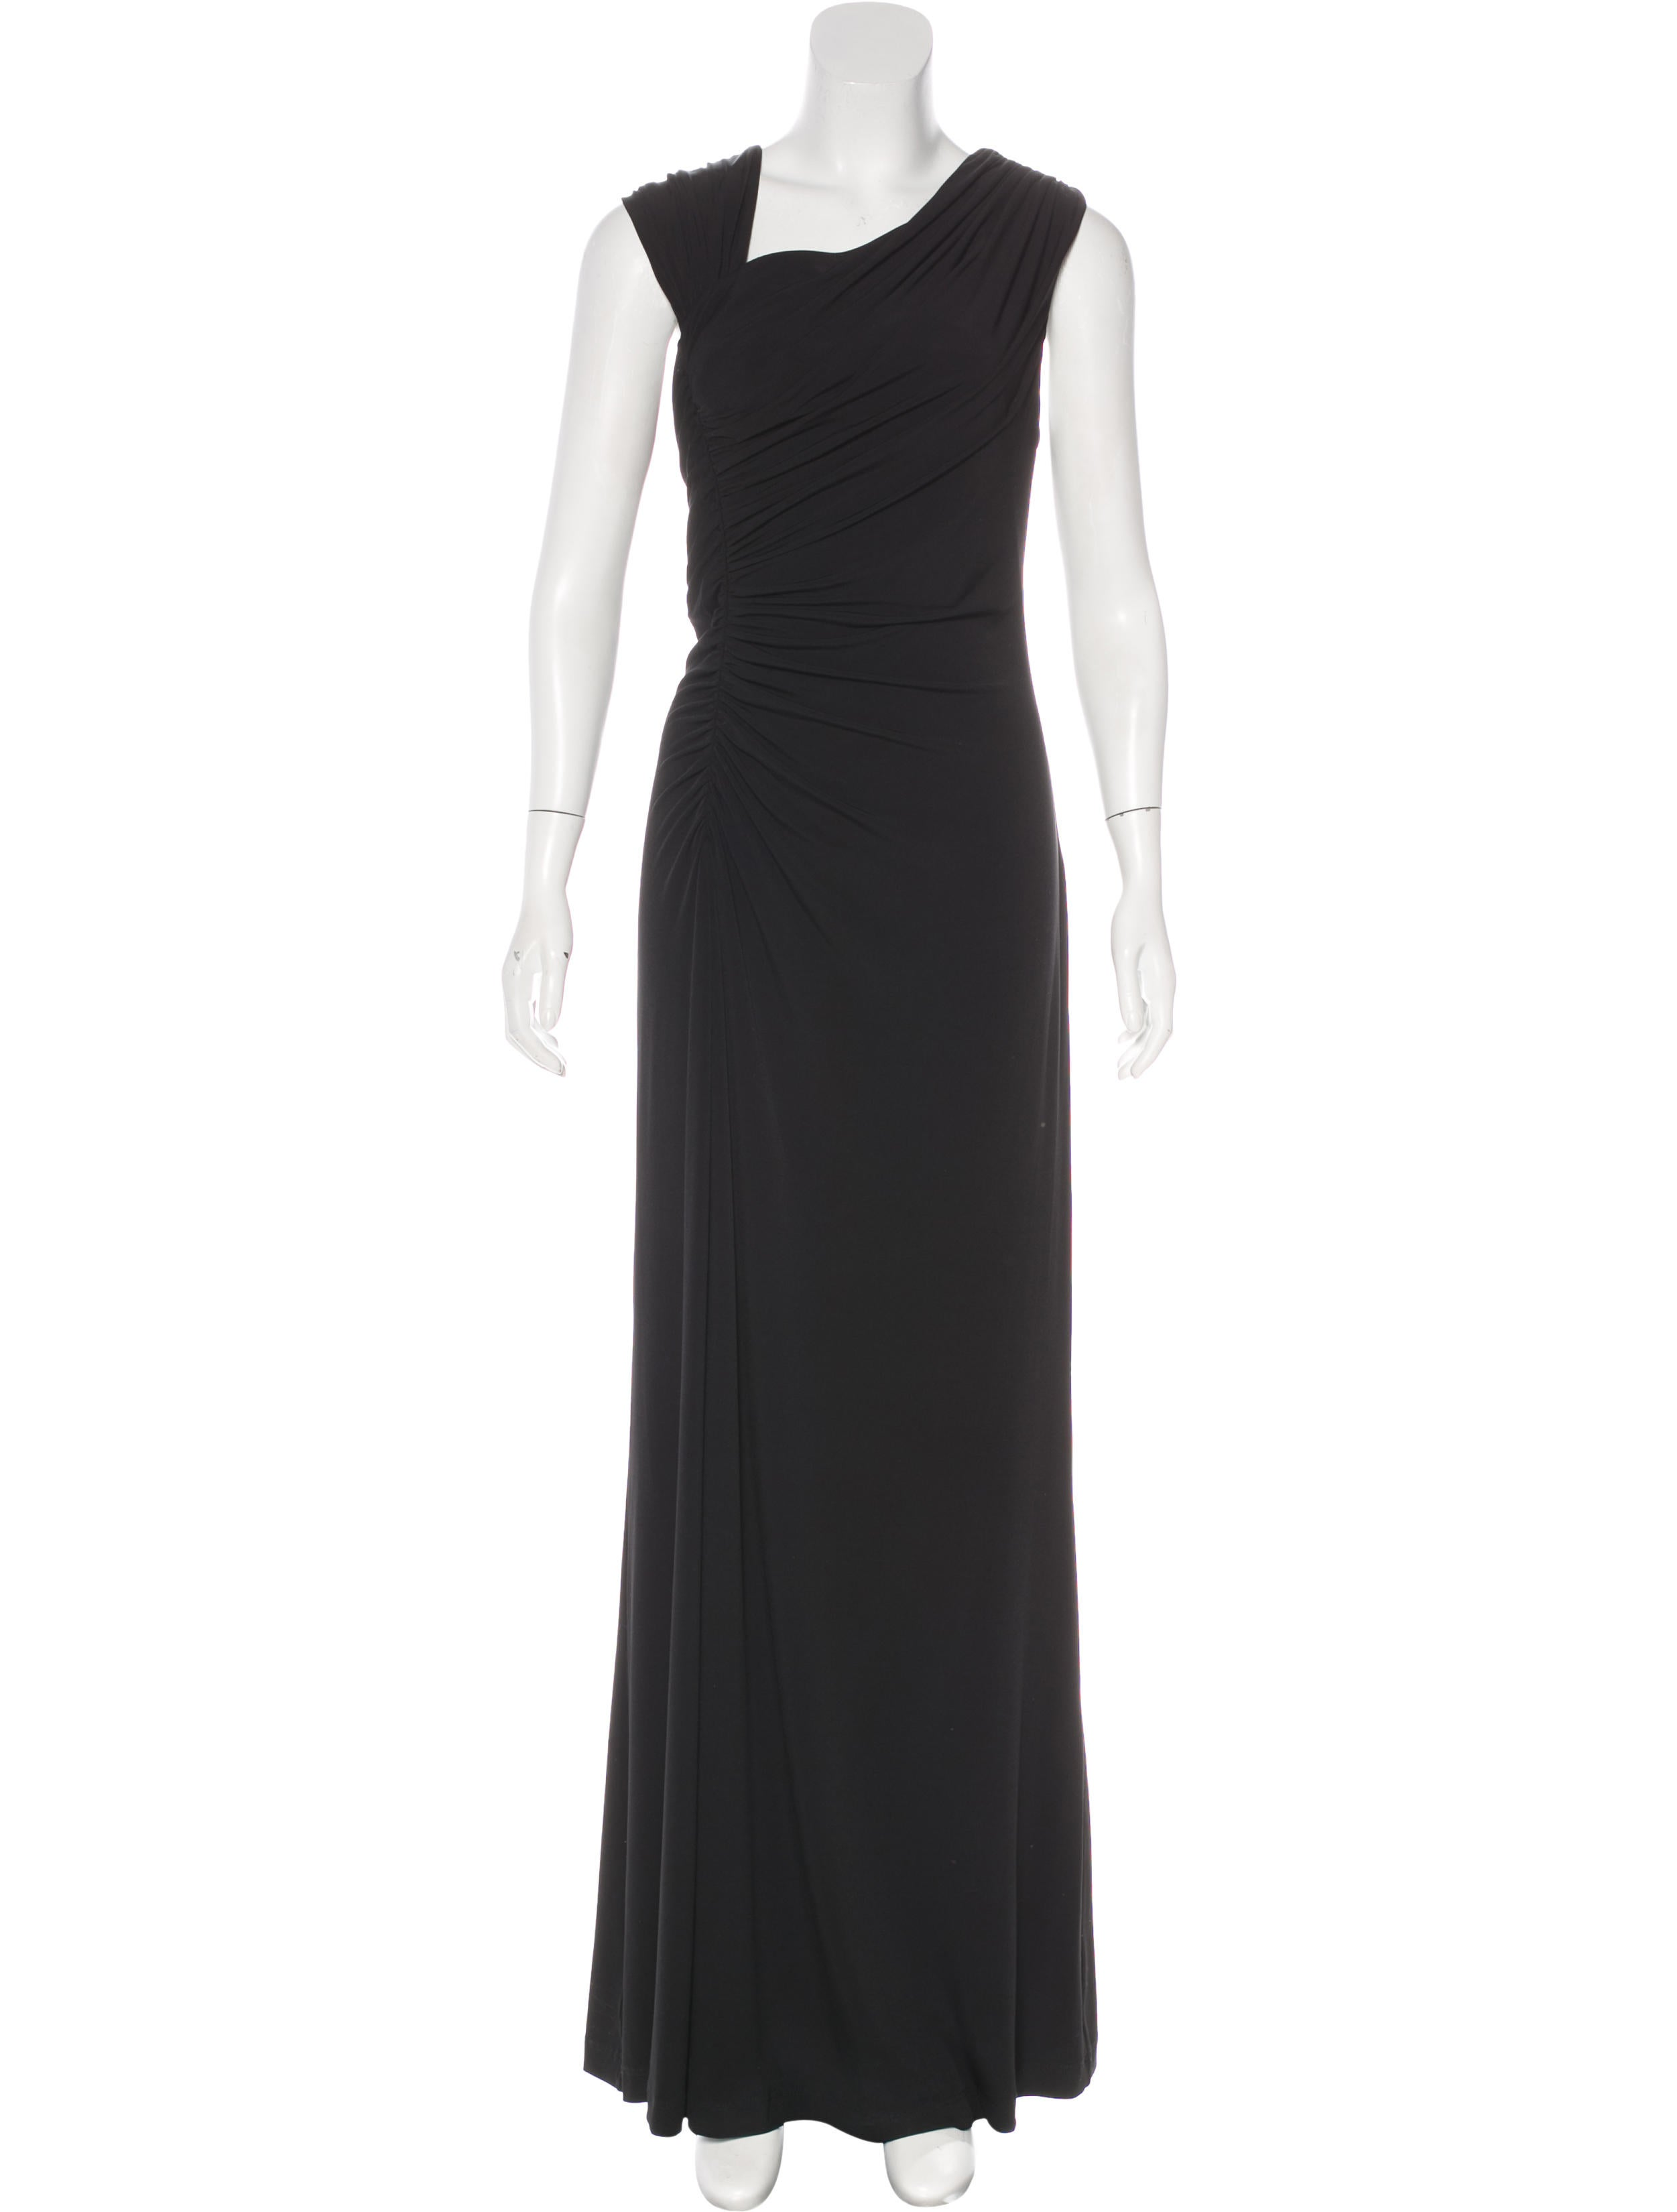 Calvin Klein Gathered Evening Dress - Clothing - WYL20664 | The RealReal